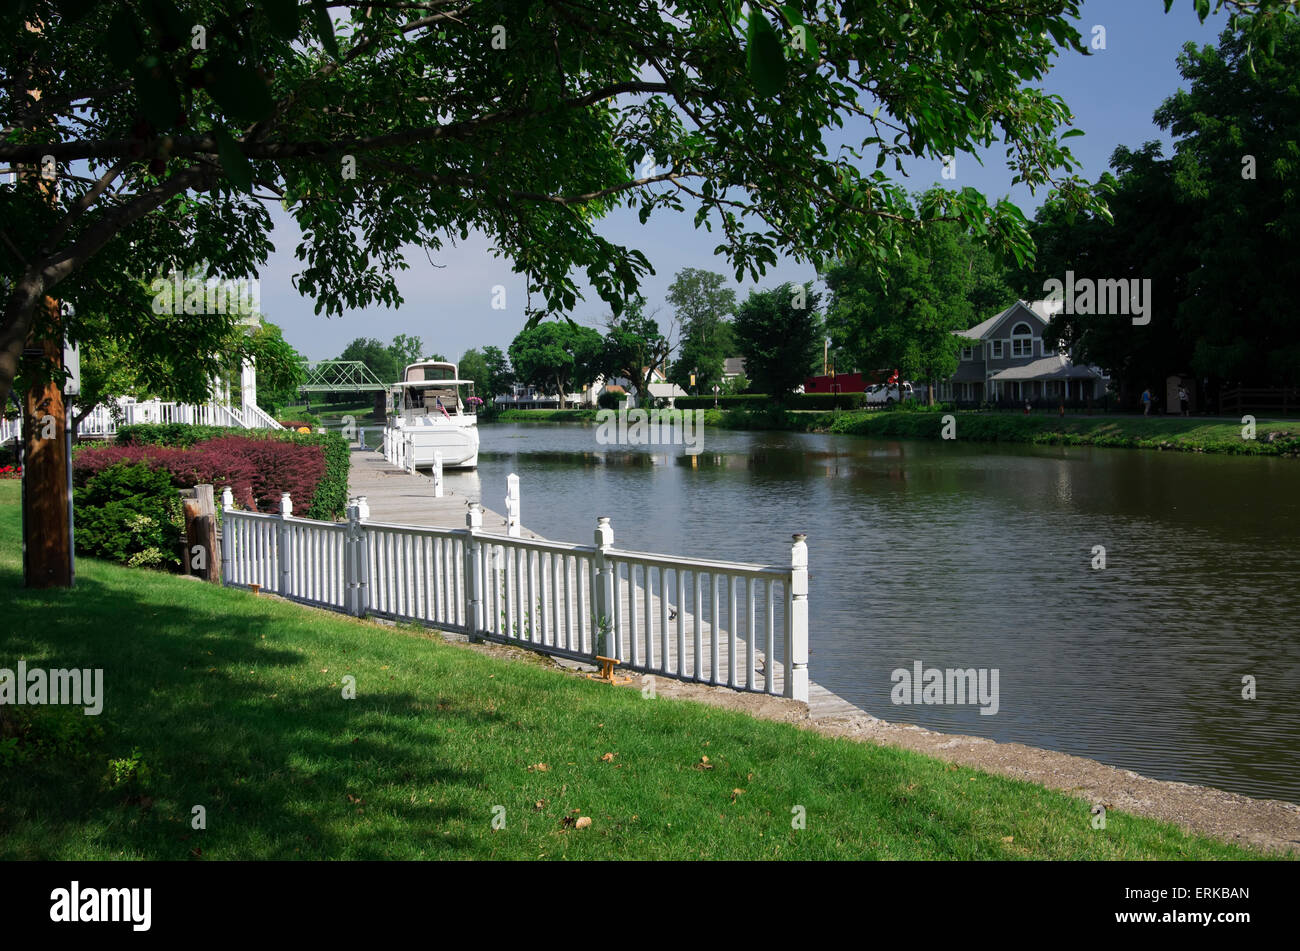 Private yacht tied along canal side and green lawn; Spencerport, New York, United States of America - Stock Image